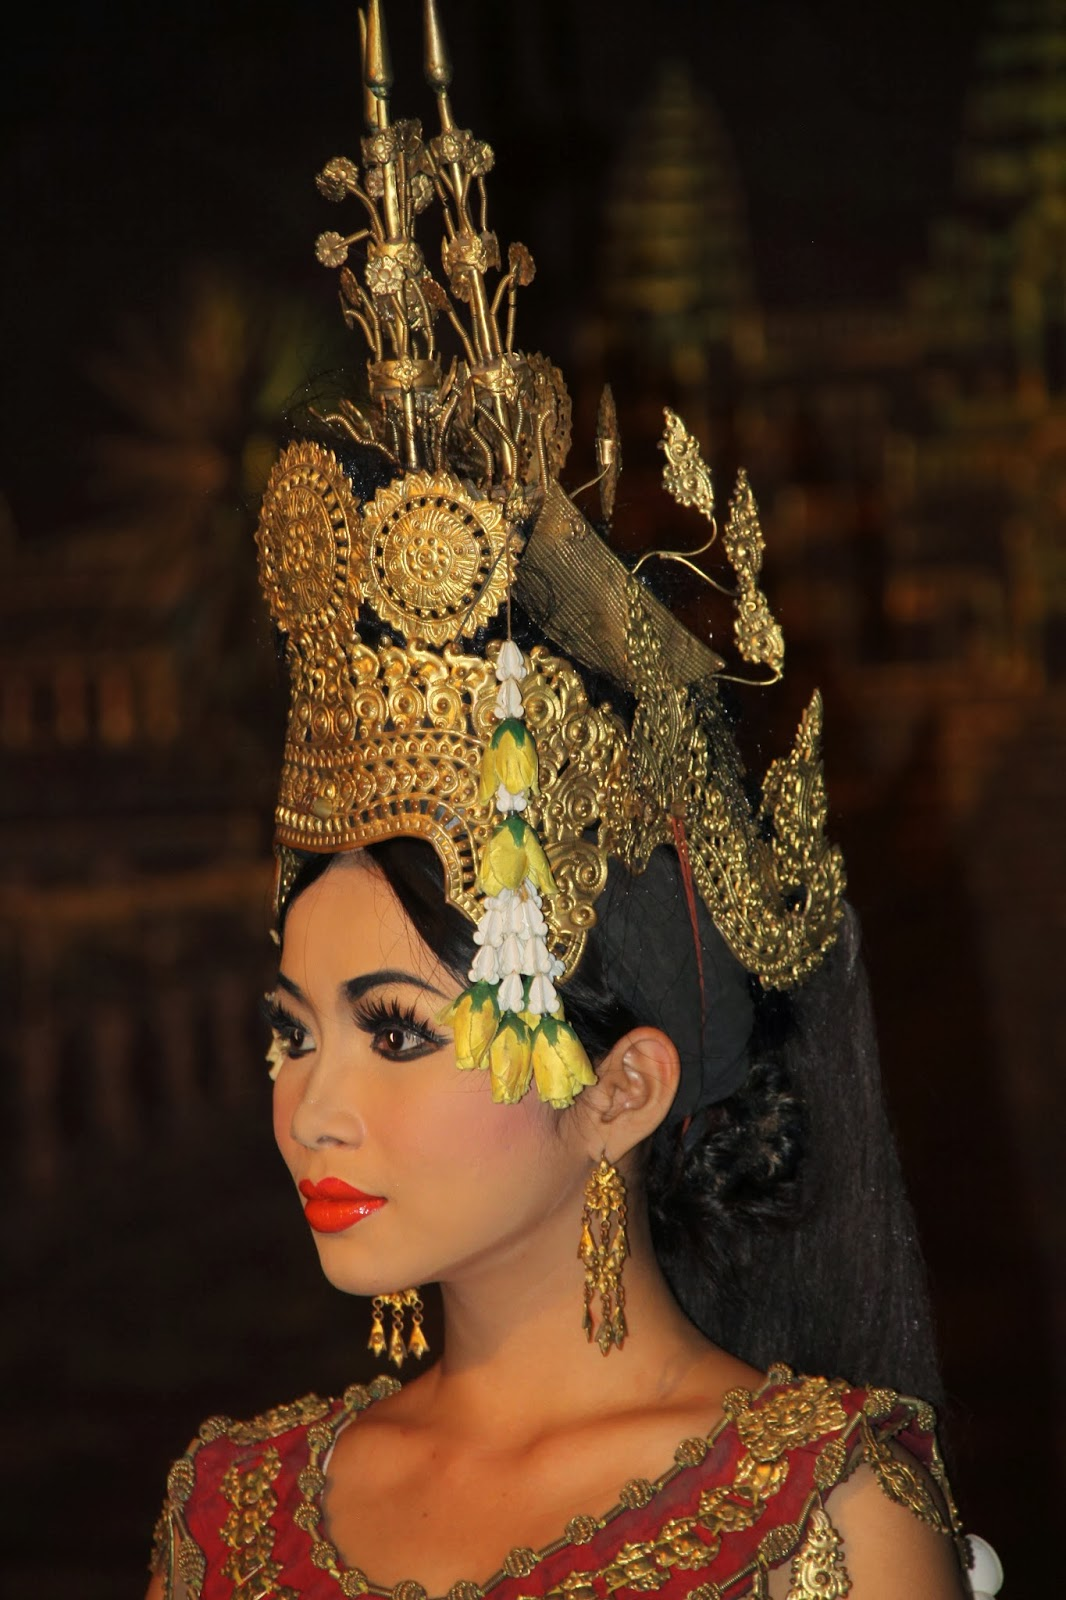 khmer apsara pictures - HD1066×1600